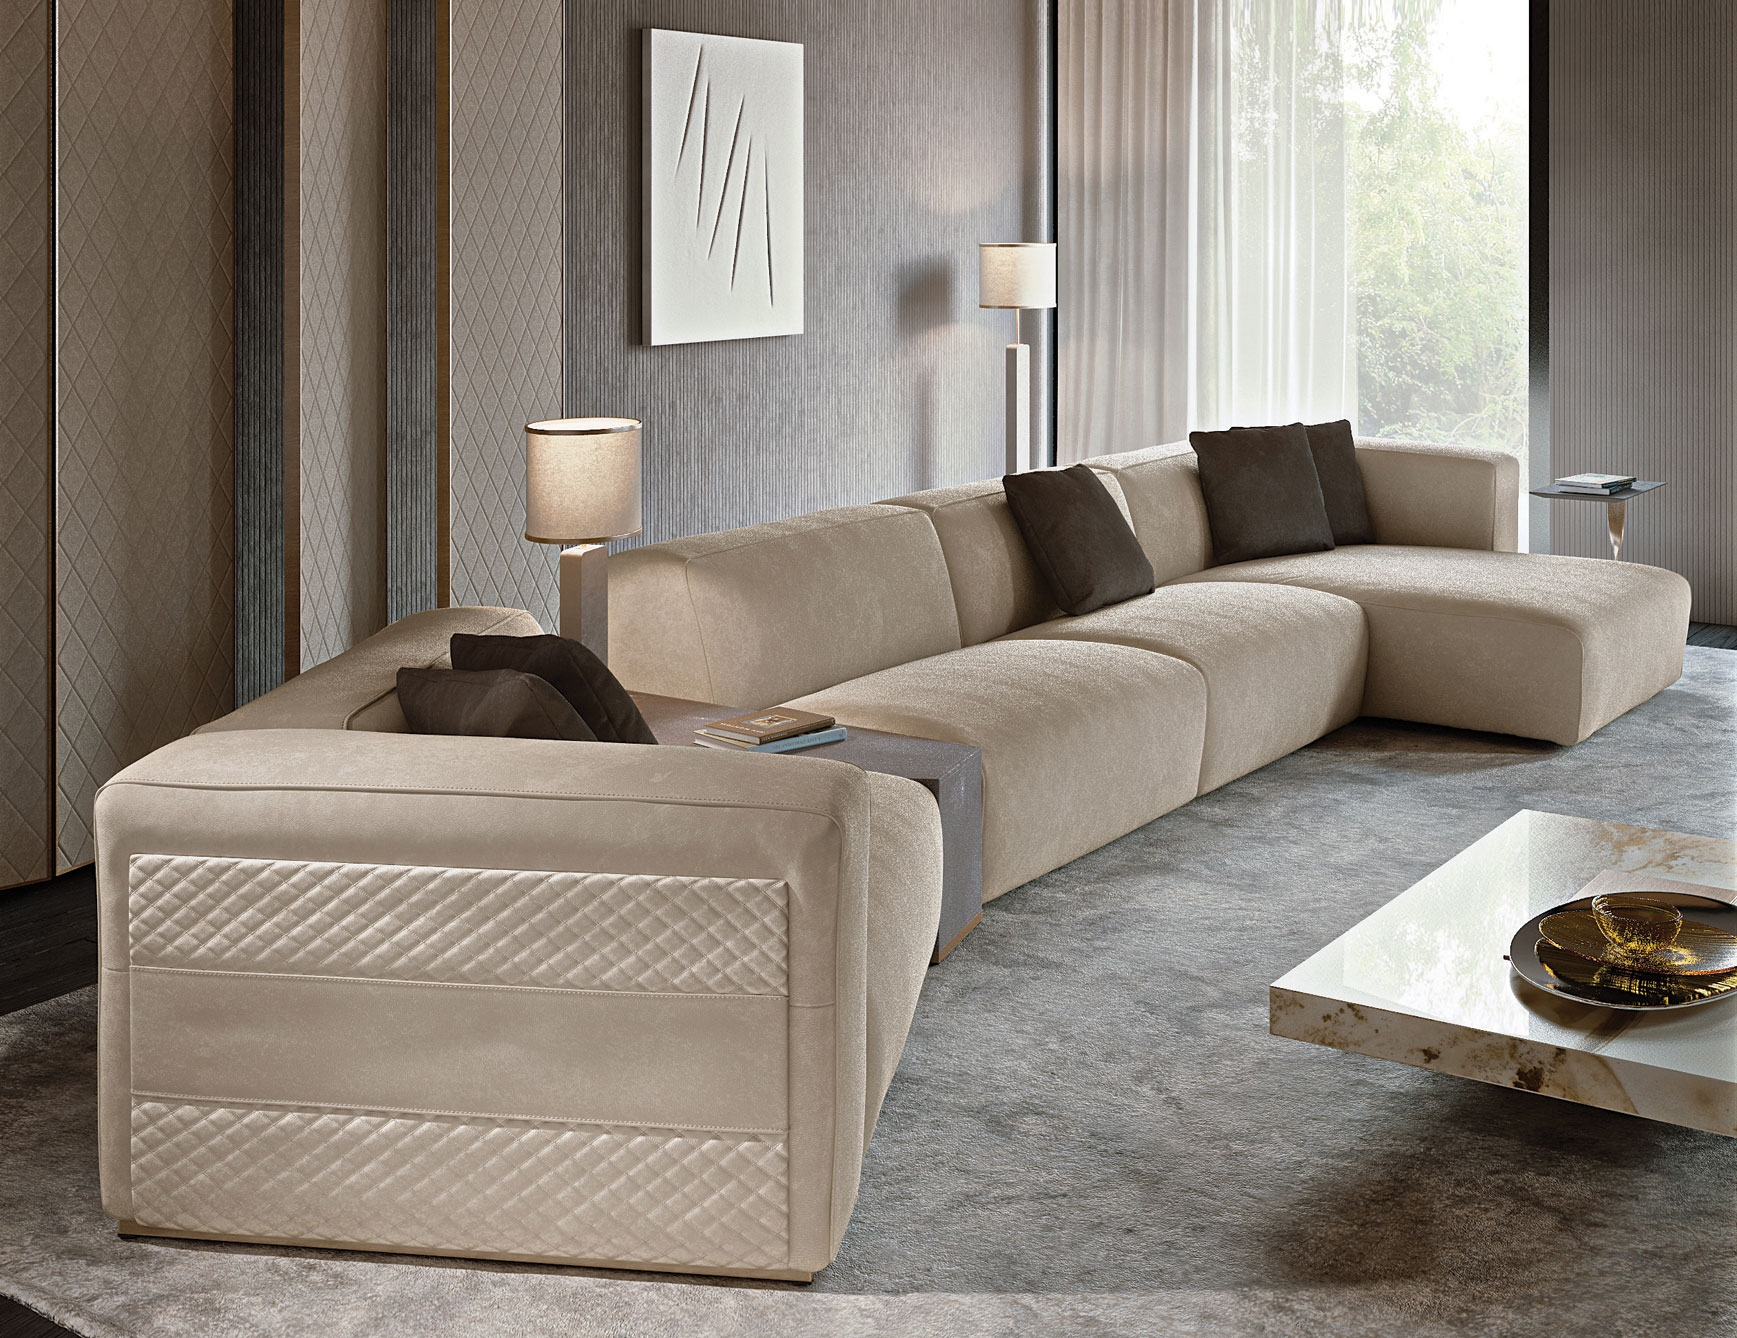 Italian Designer Luxury High End Sofas Sofa Chairs Nella Vetrina Within Sofas And Chairs (View 14 of 15)